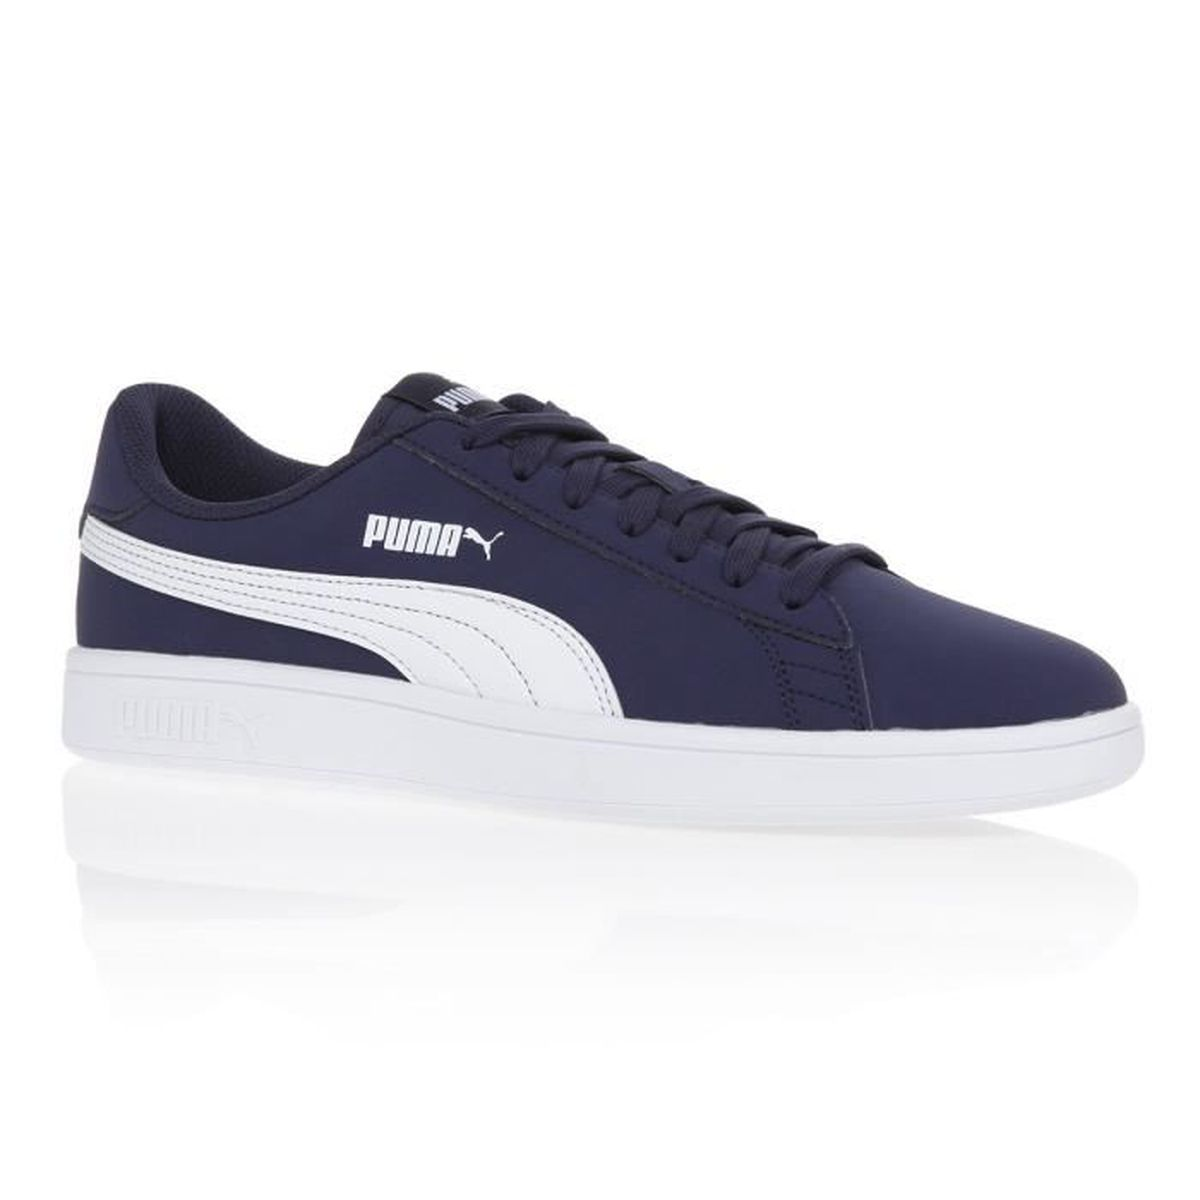 BASKET PUMA Baskets Smash v2 Buck - Mixte - Bleu